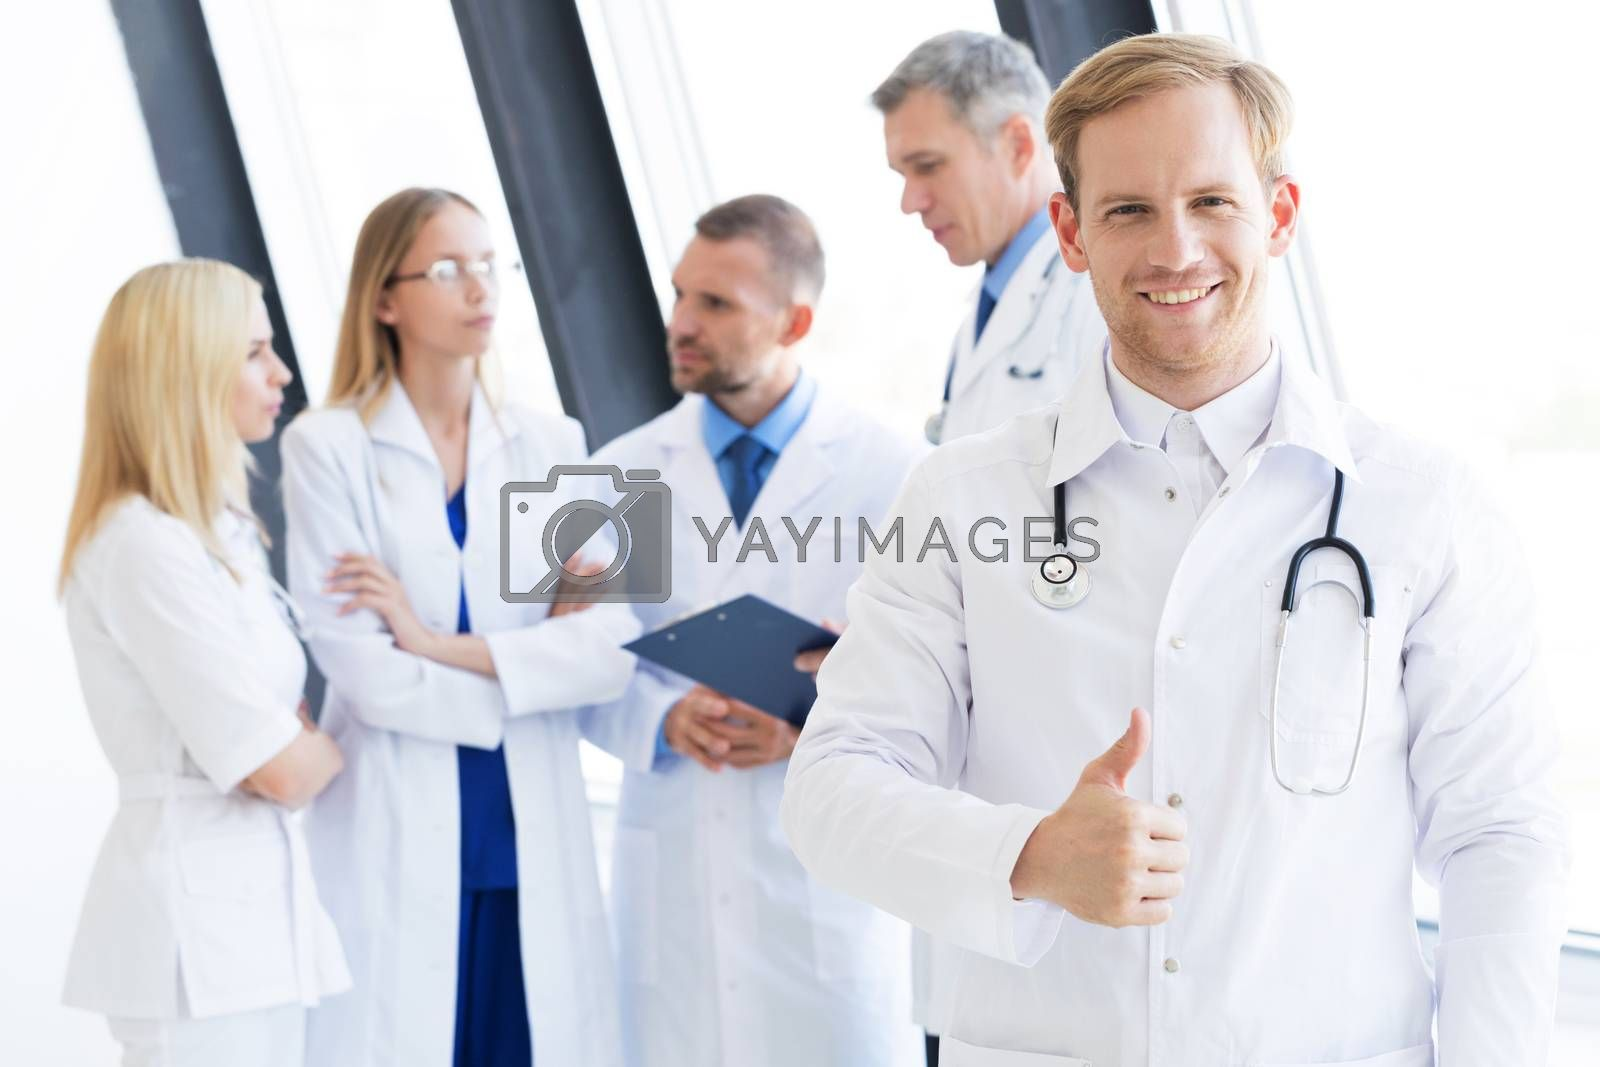 Team of medical professionals, young doctor looking at camera, smiling, showing thumb up